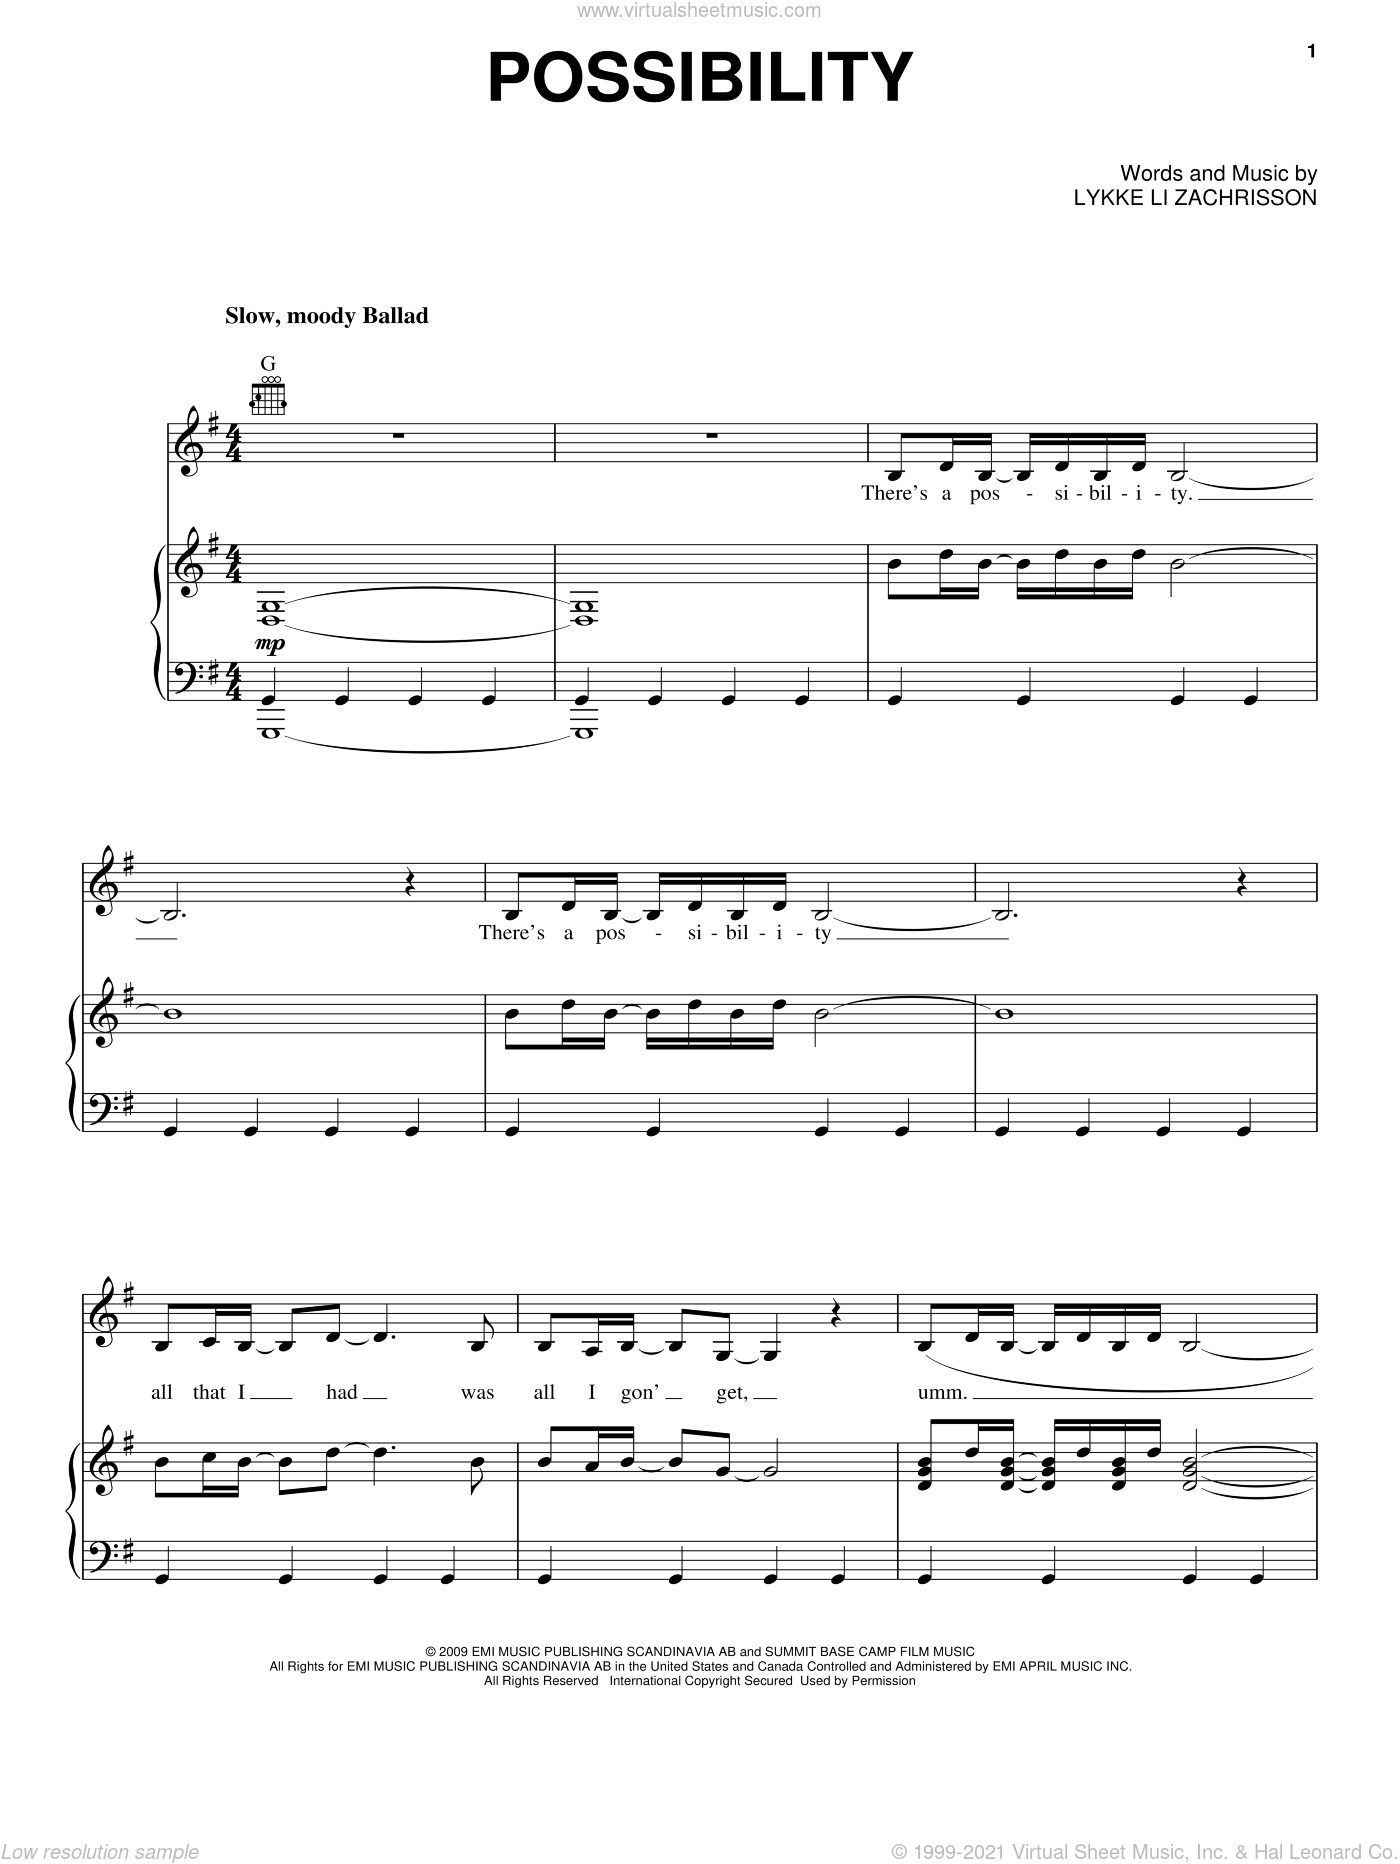 Possibility sheet music for voice, piano or guitar by Lykke Li and Lykke Li Zachrisson, intermediate skill level